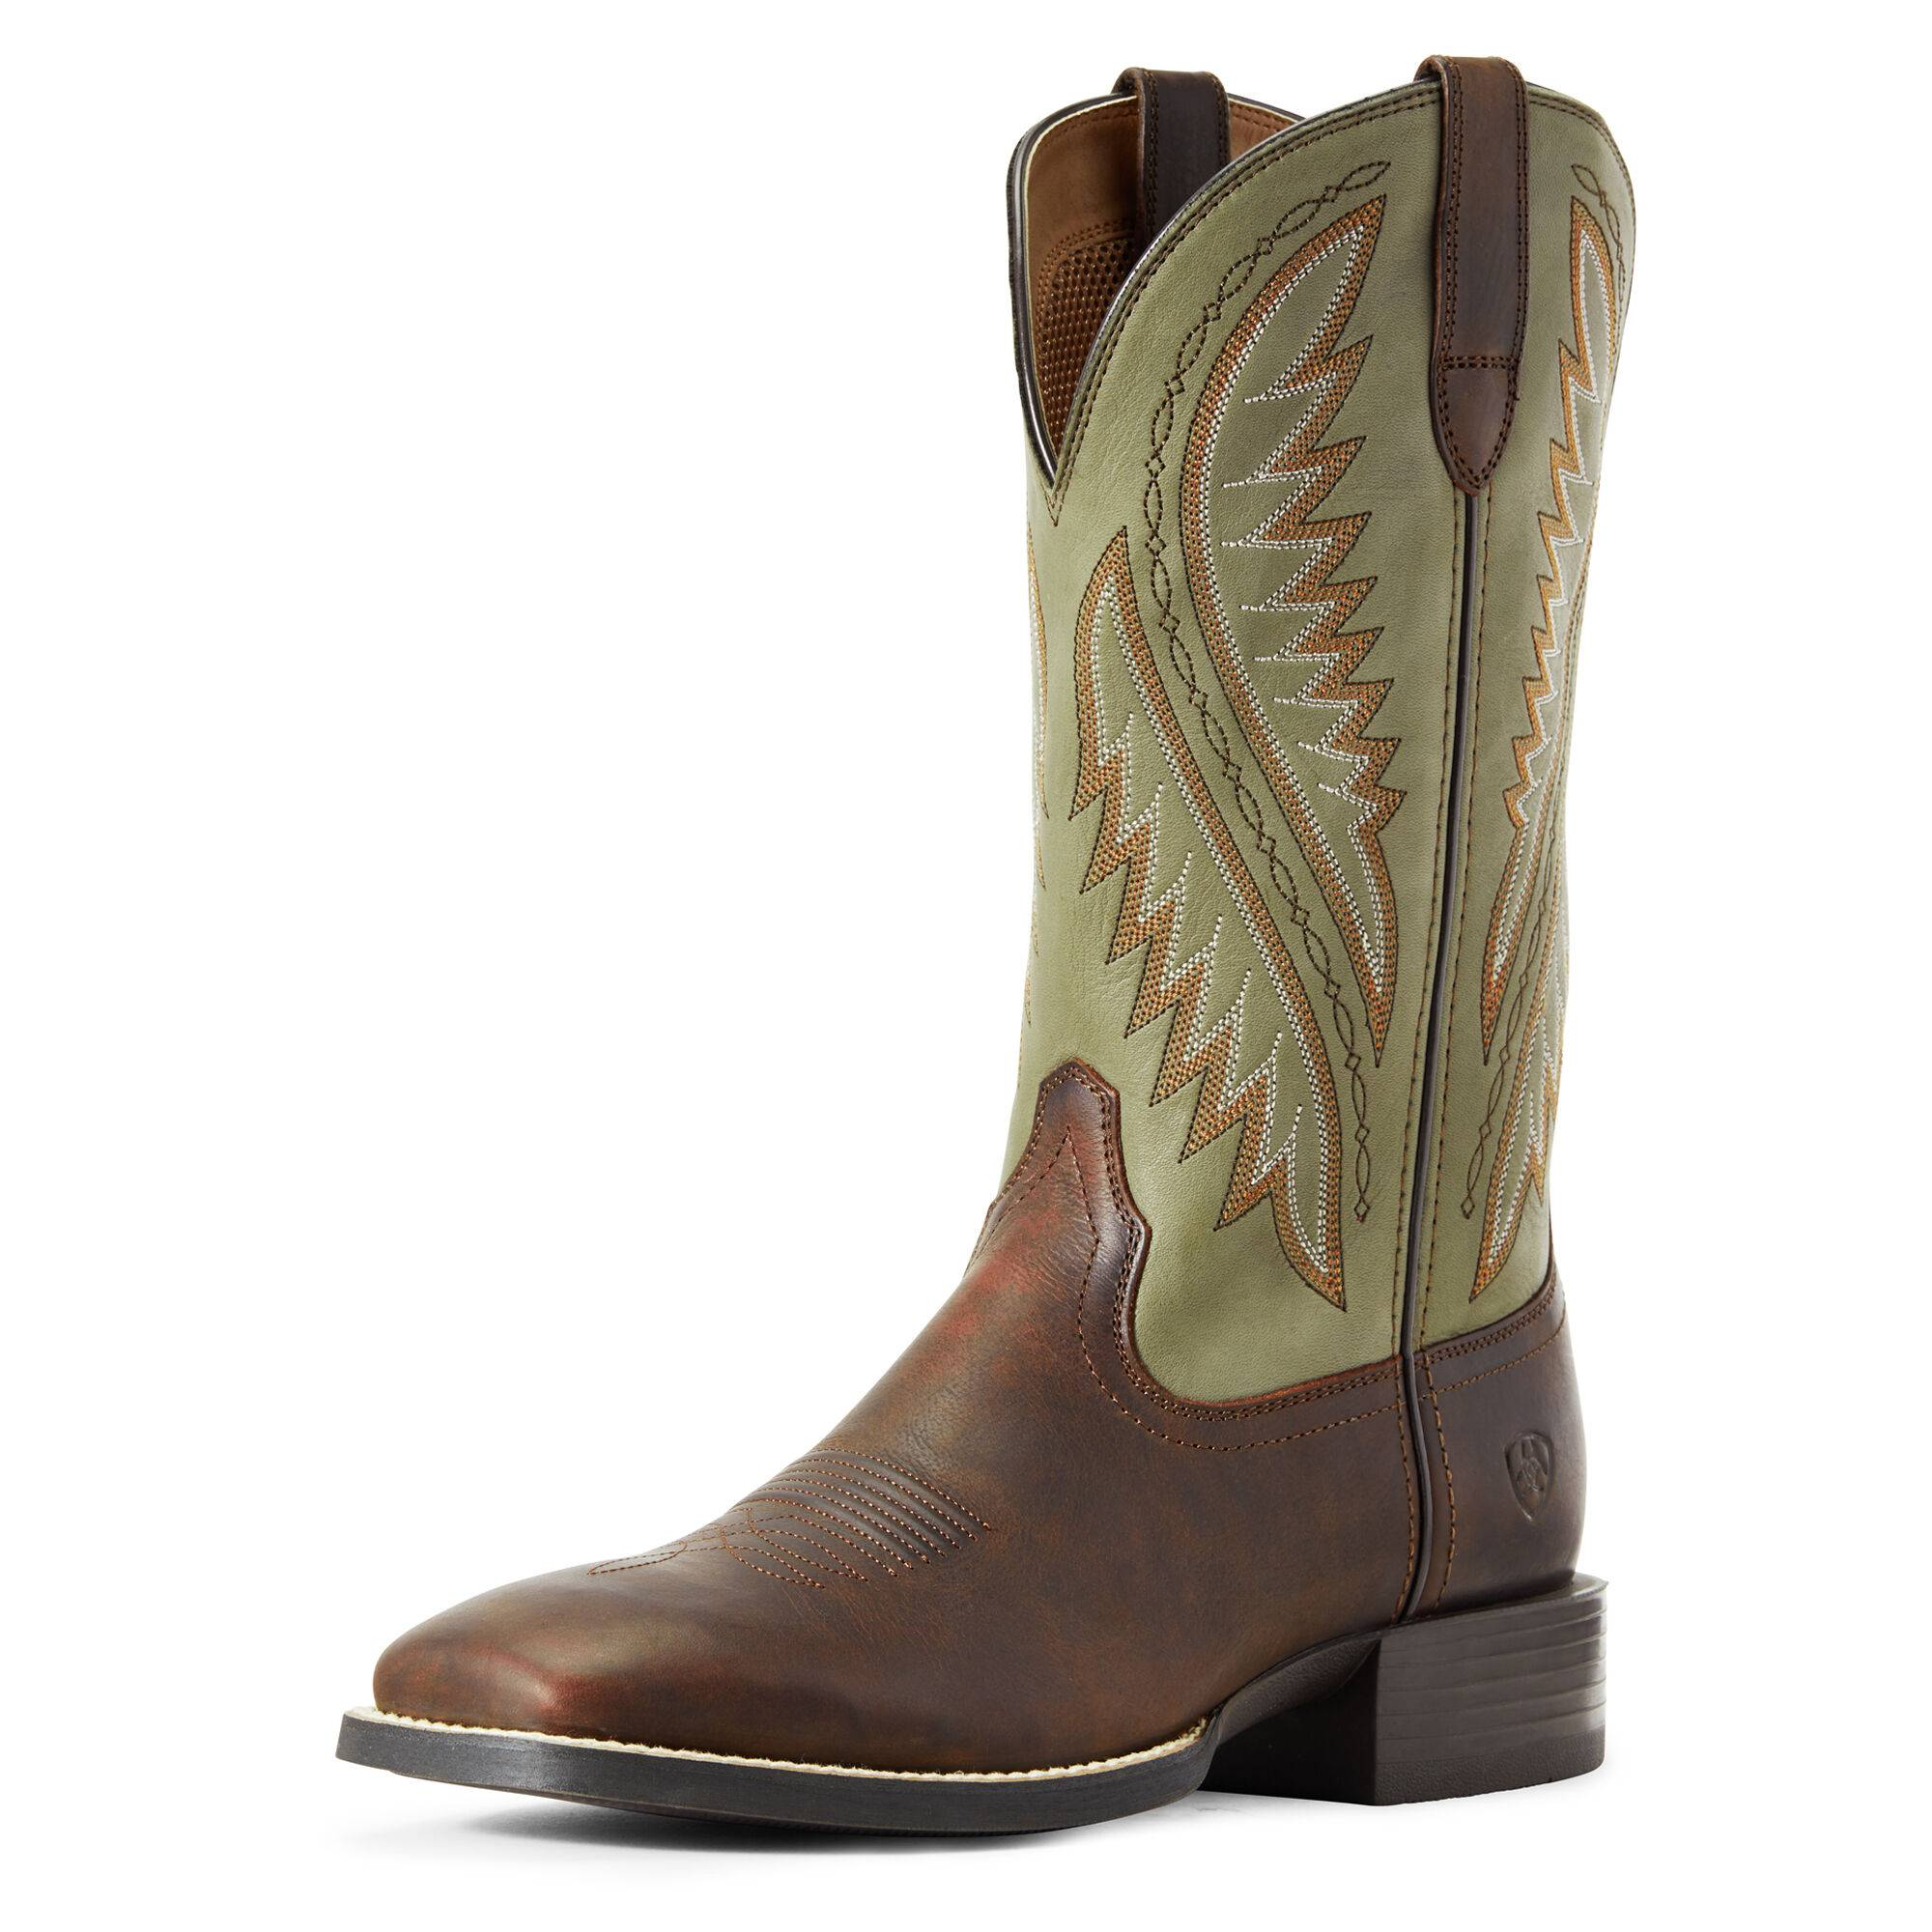 Ariat Men's Sport Stonewall Western Boots in Barley Brown/Olive Green Leather, D Medium Width, Size 12, by Ariat